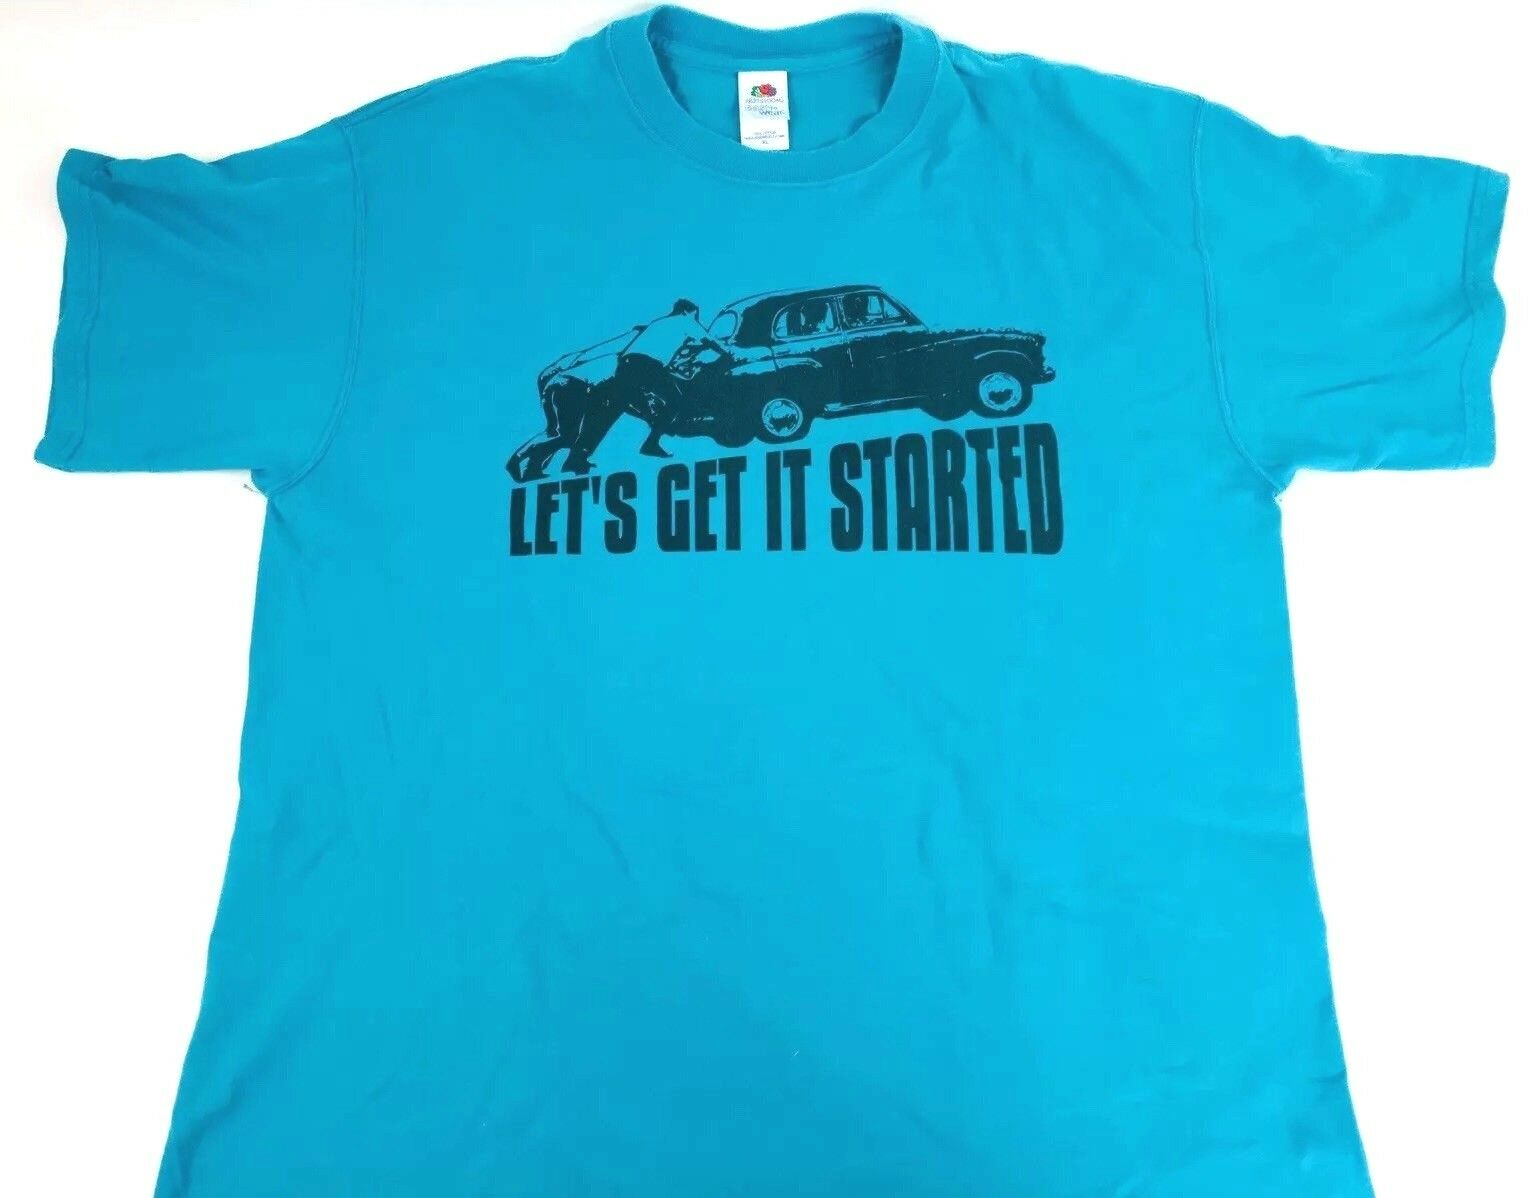 Let's Get It Started shirt 90s tee Blau tee XL